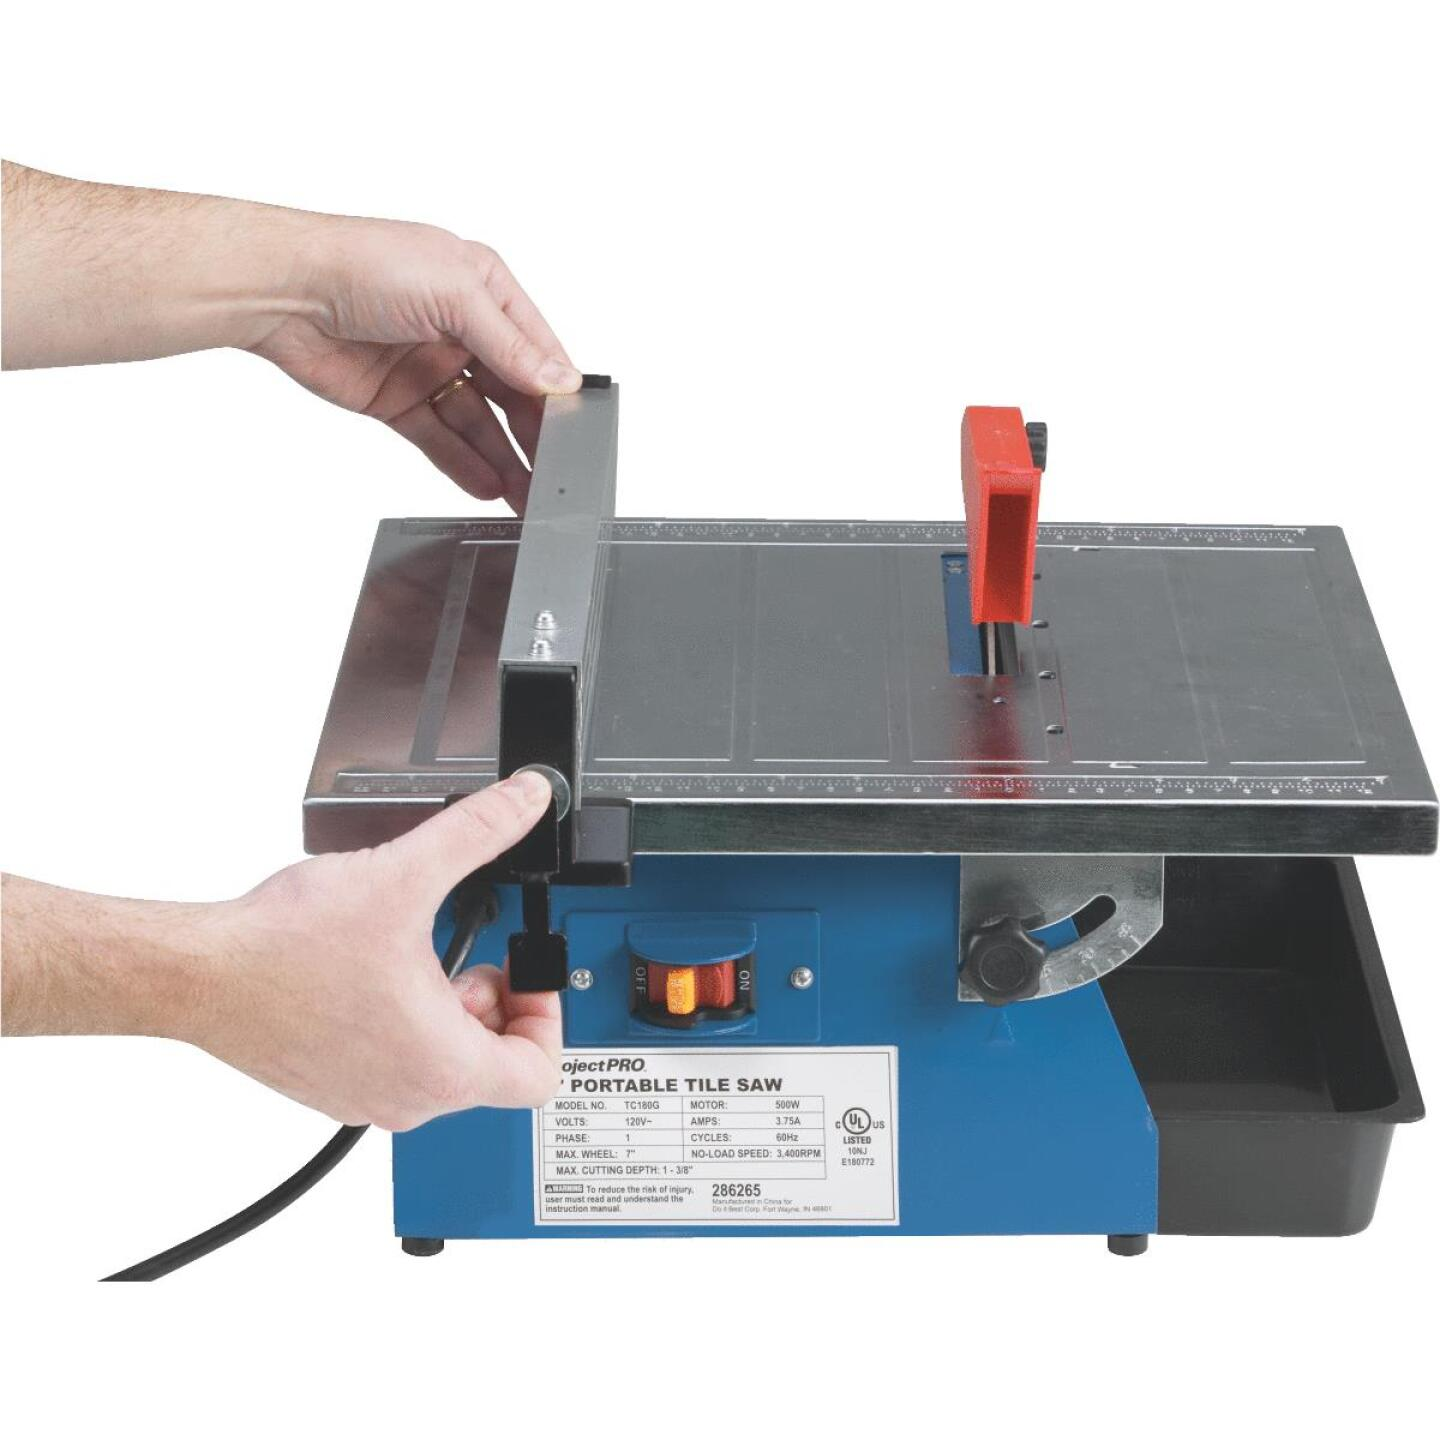 Project Pro 7 In. Portable Tile Saw Image 11